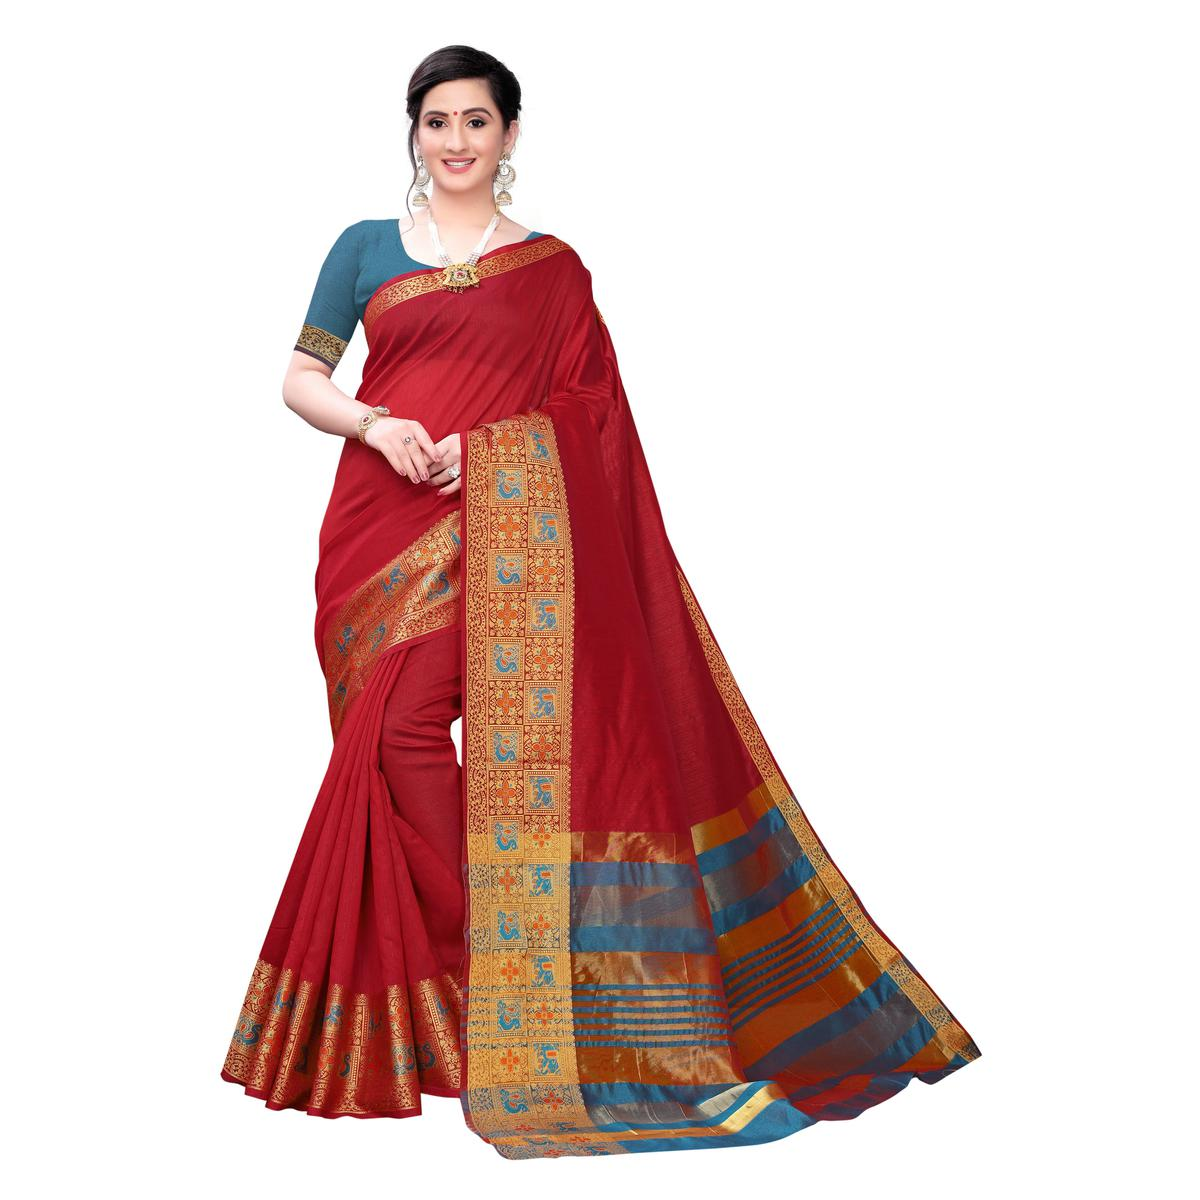 Eye-catching Red Colored Festive Wear Woven Blended Cotton Saree